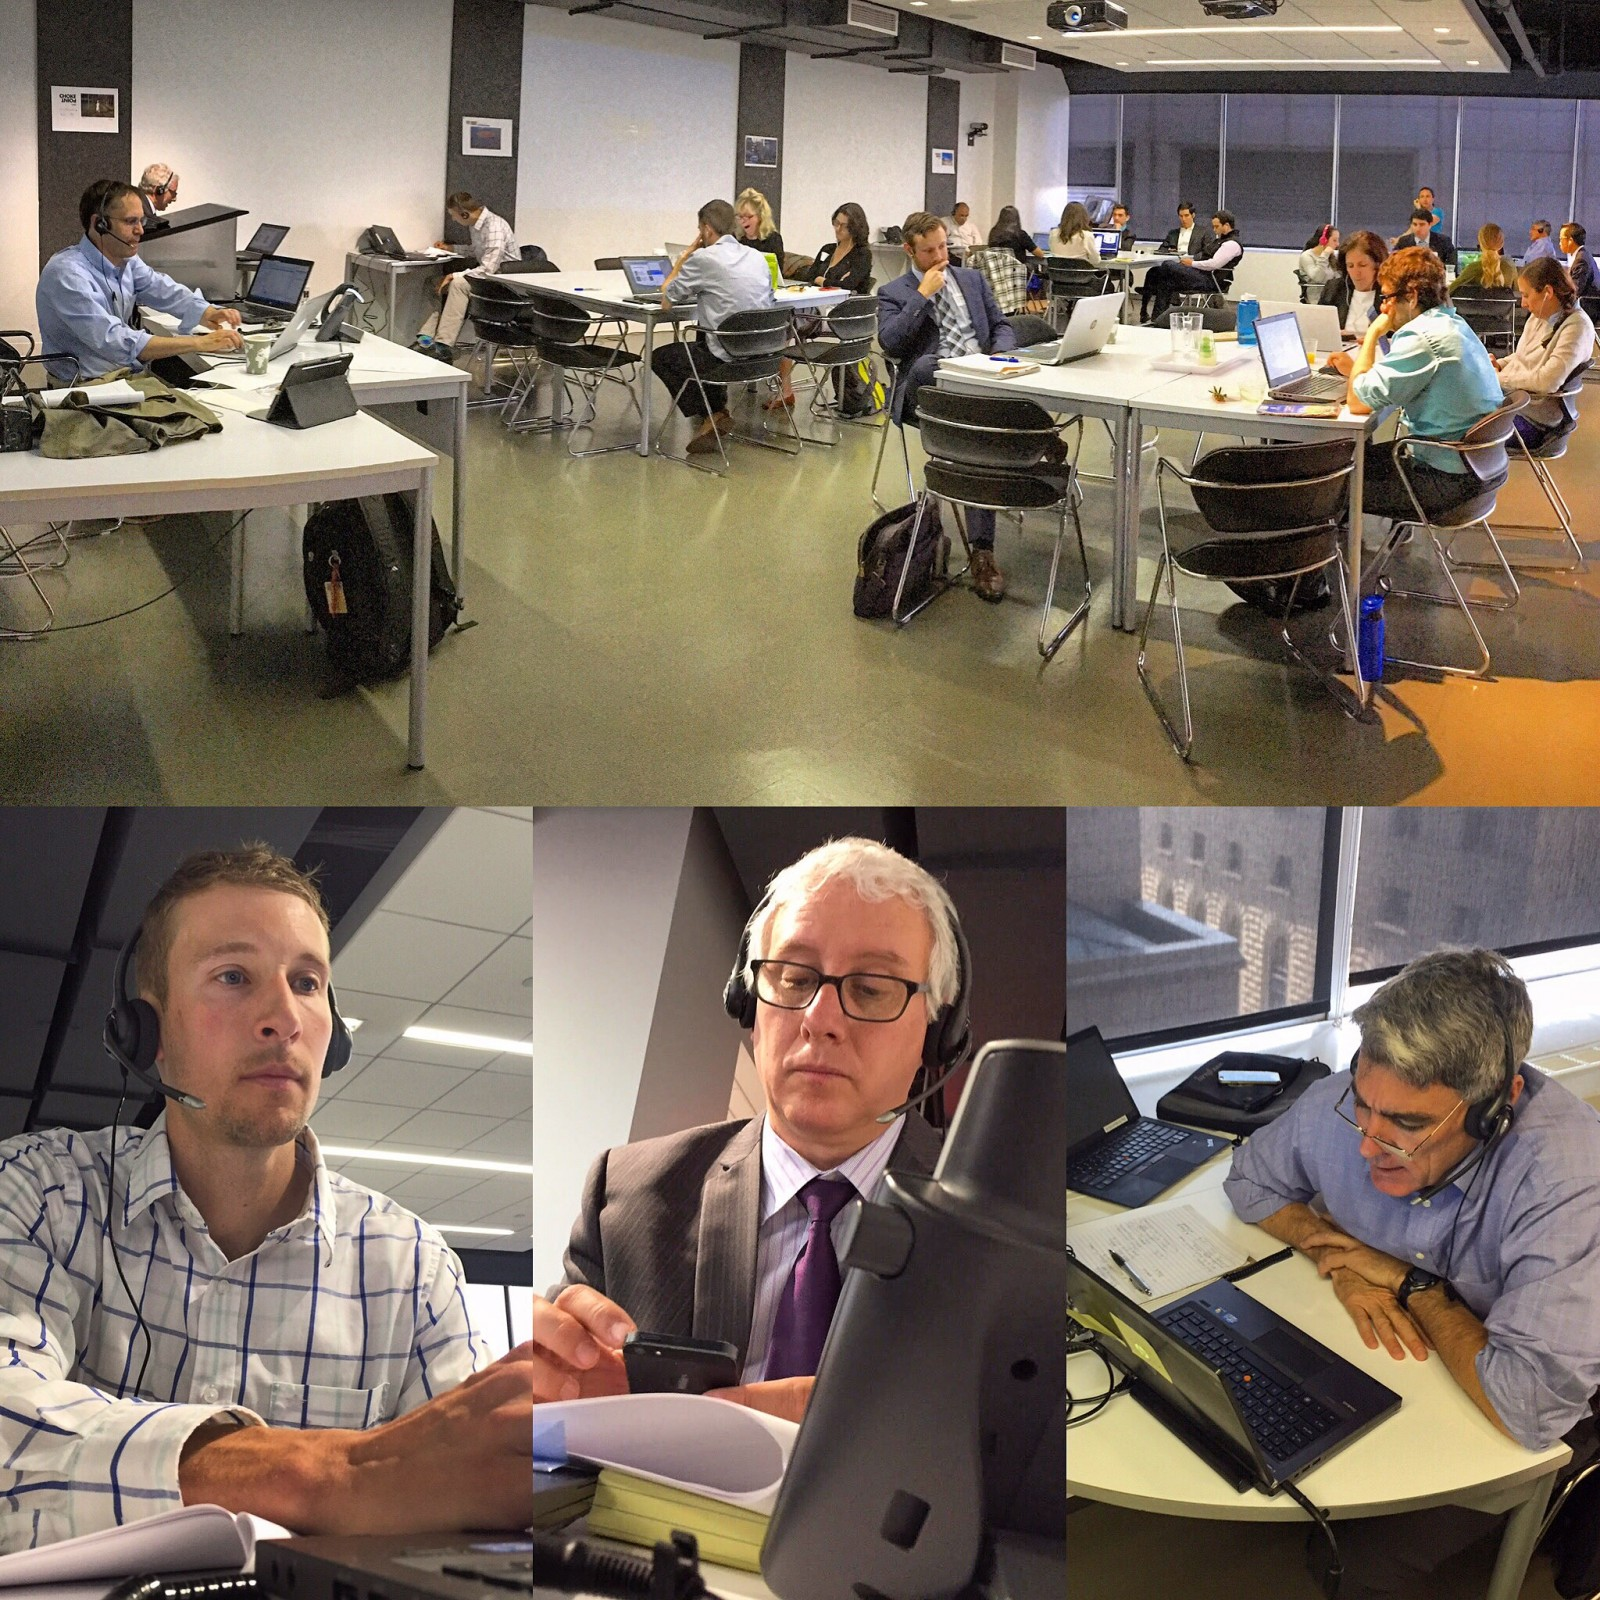 Listeners from around the world joined the interactive H2O Catalyst broadcast to discuss the future of America's water infrastructure.